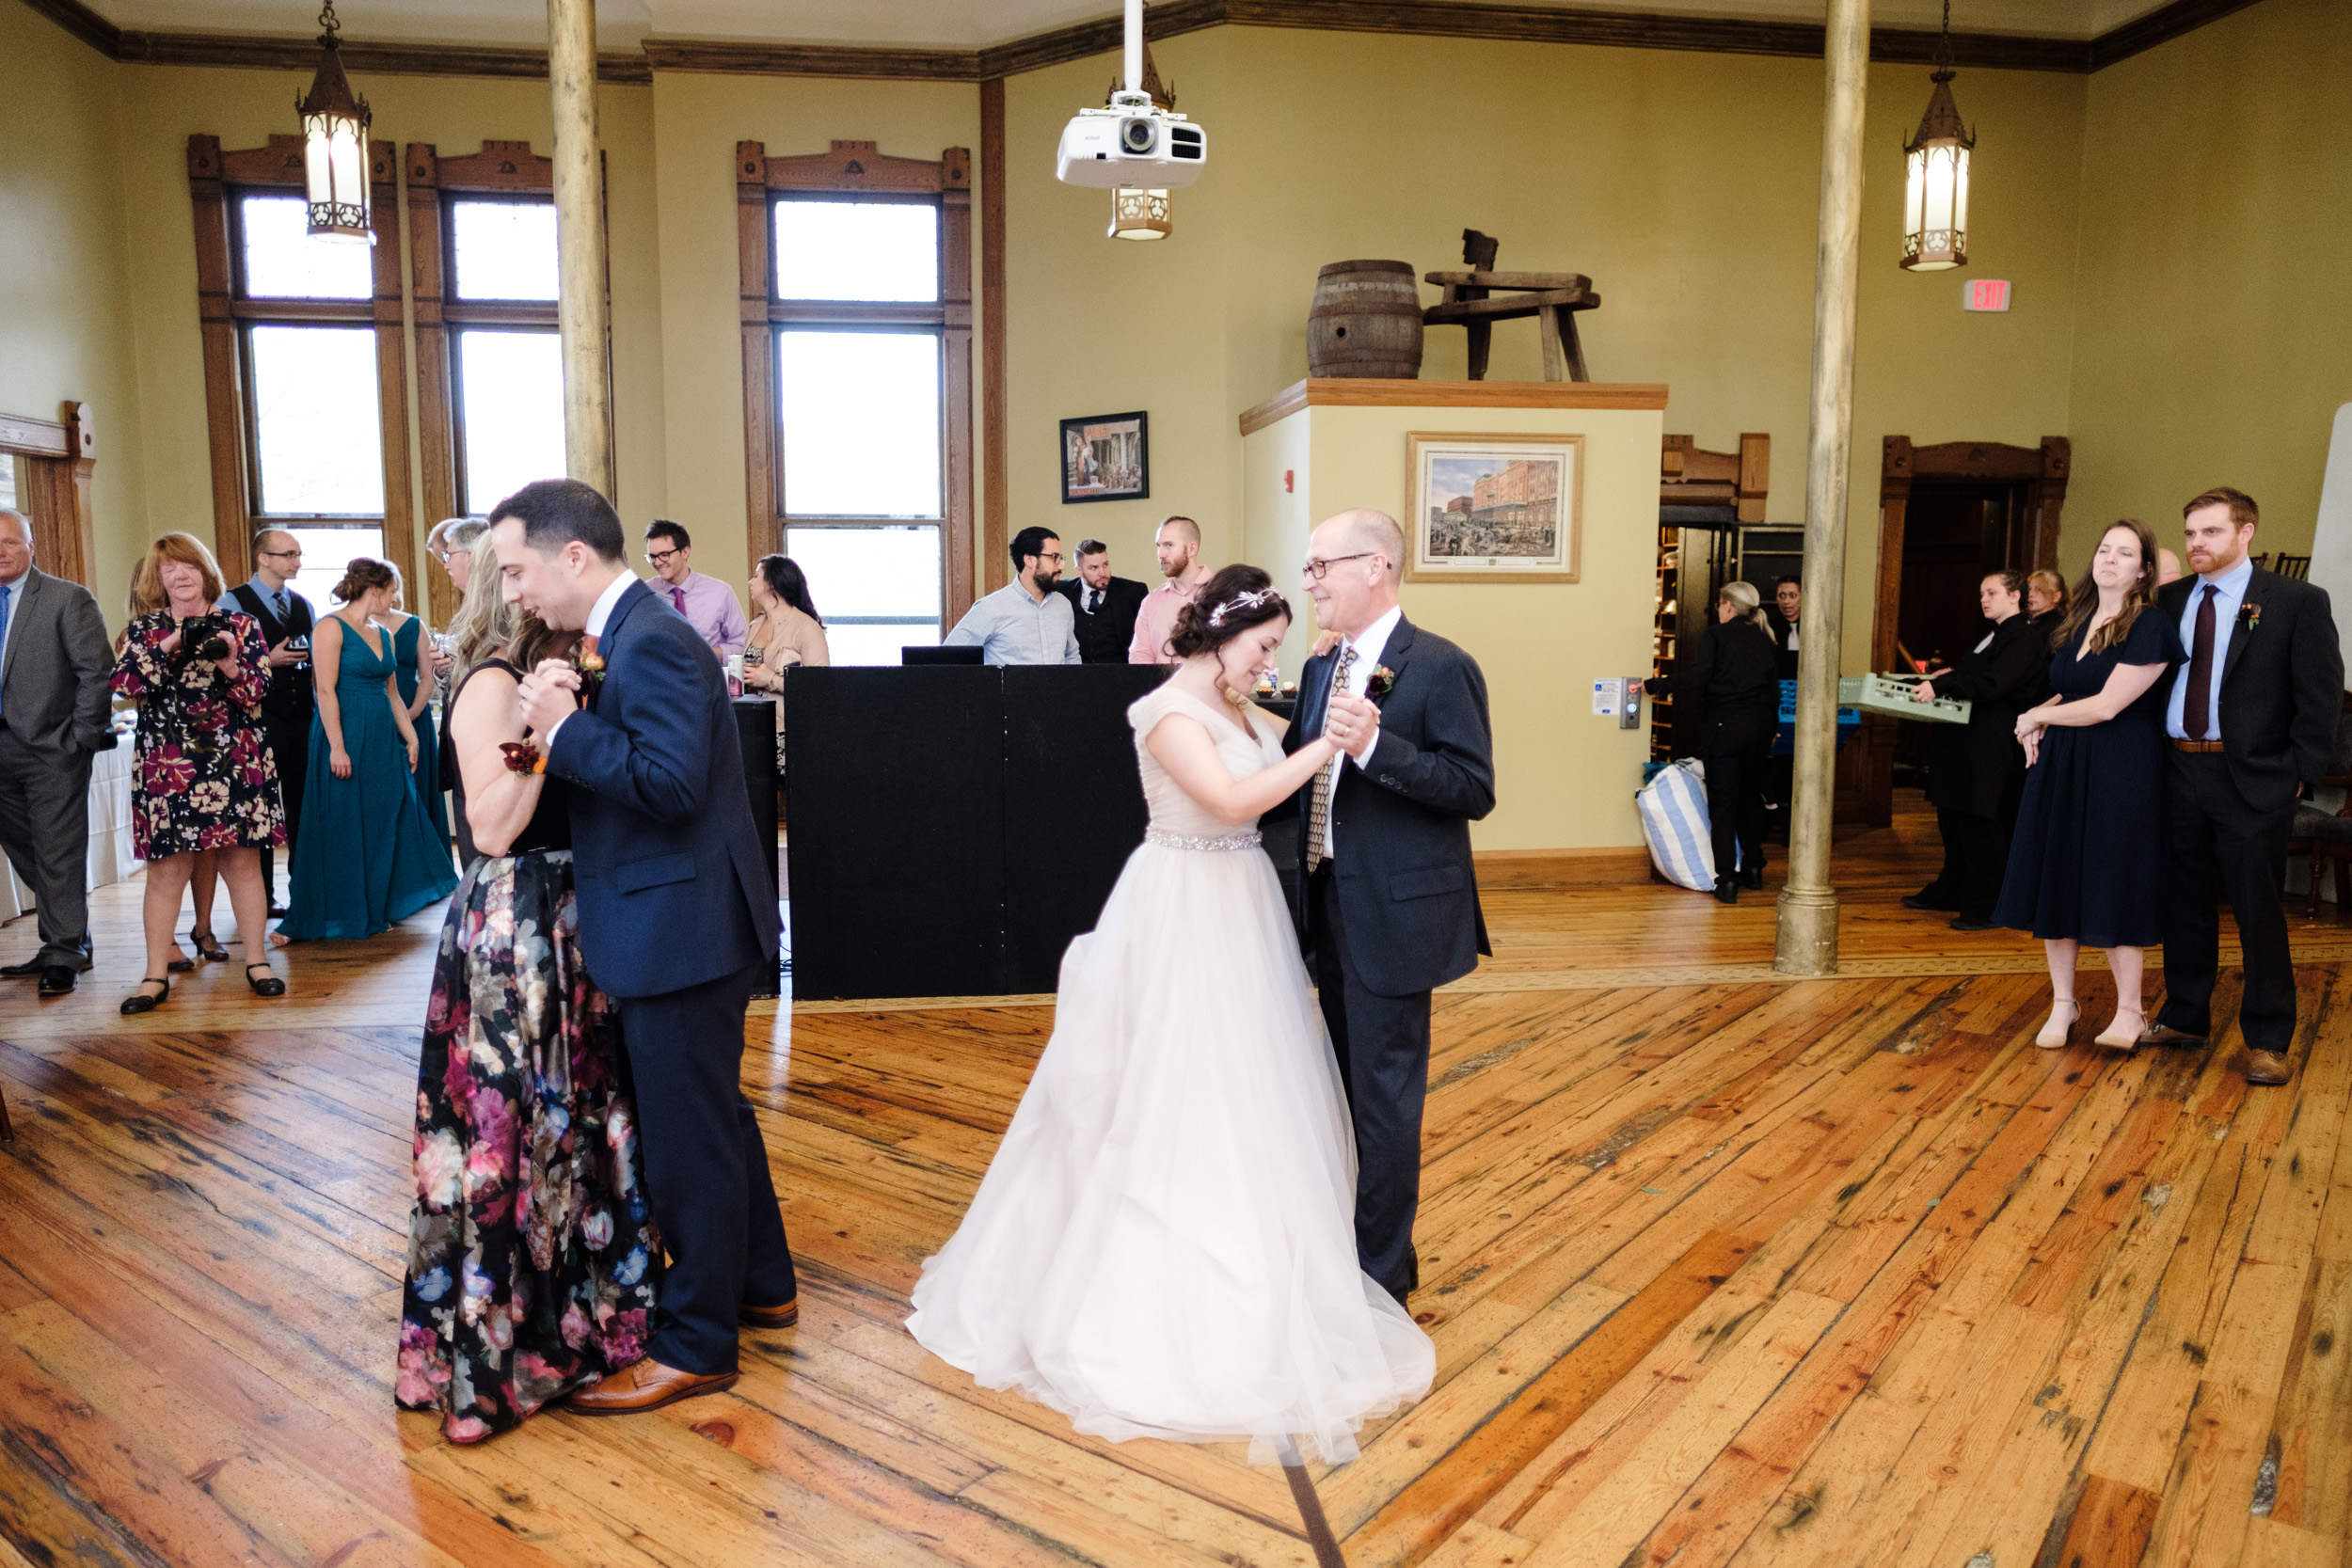 First dance, bride and groom at pabst best place, milwaukee wisconsin wedding